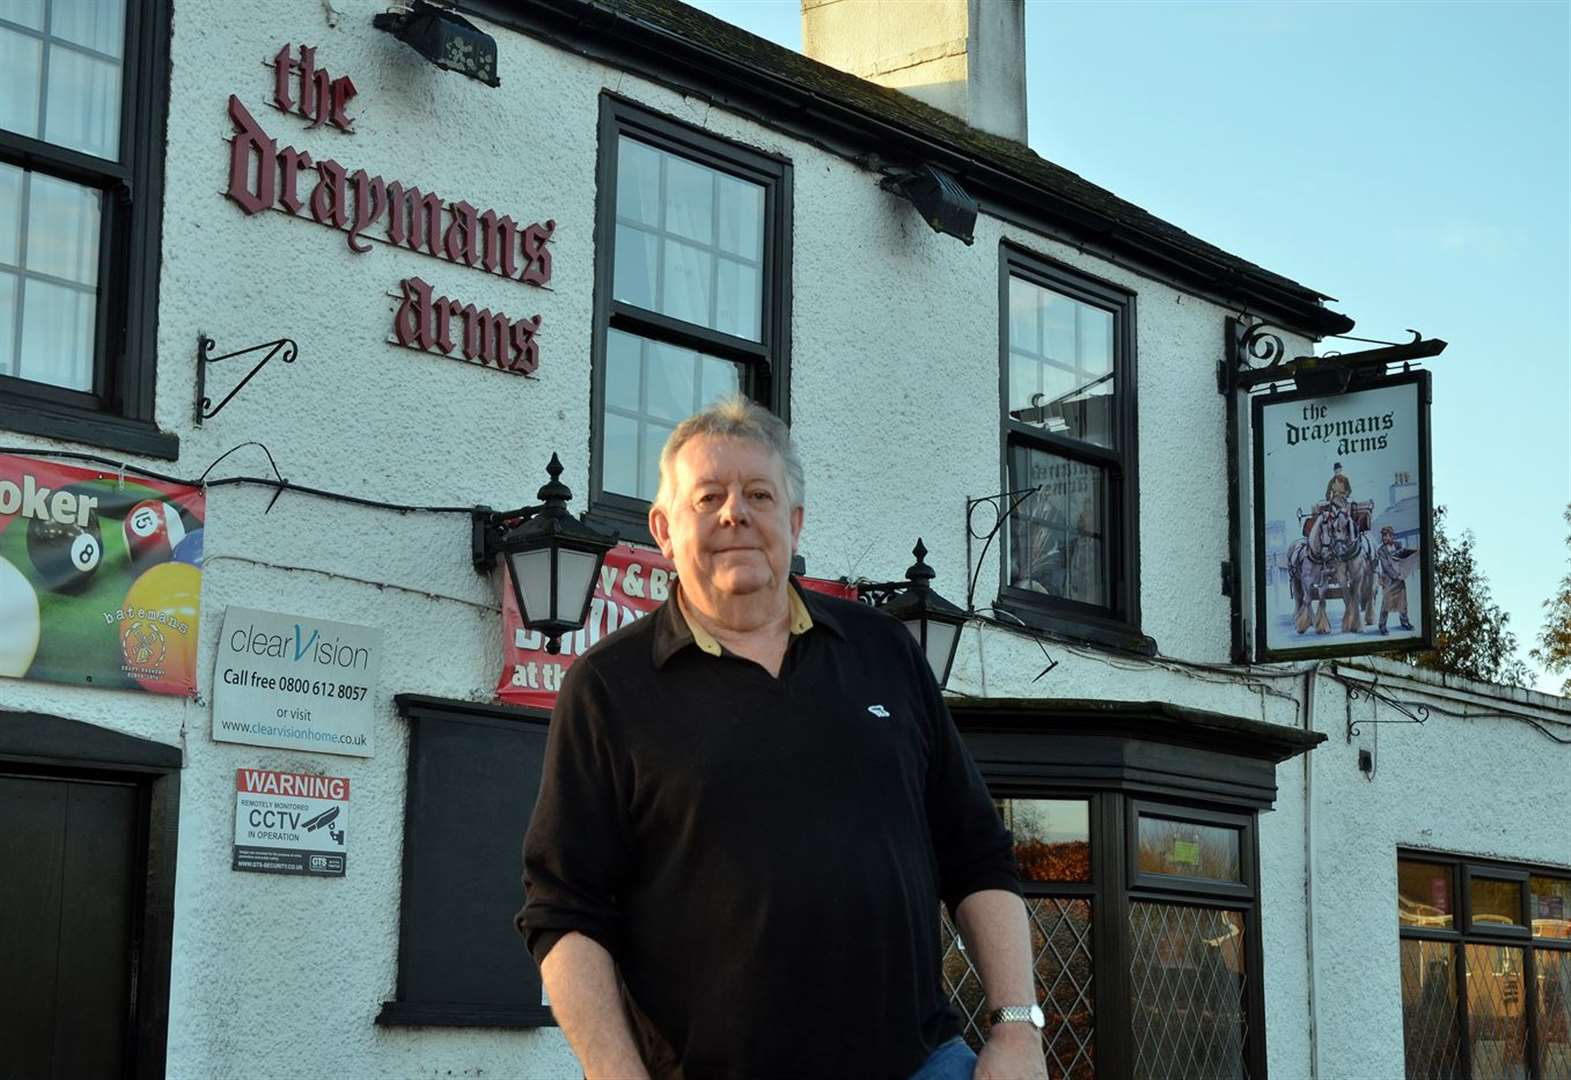 Landlord on why our pubs are struggling